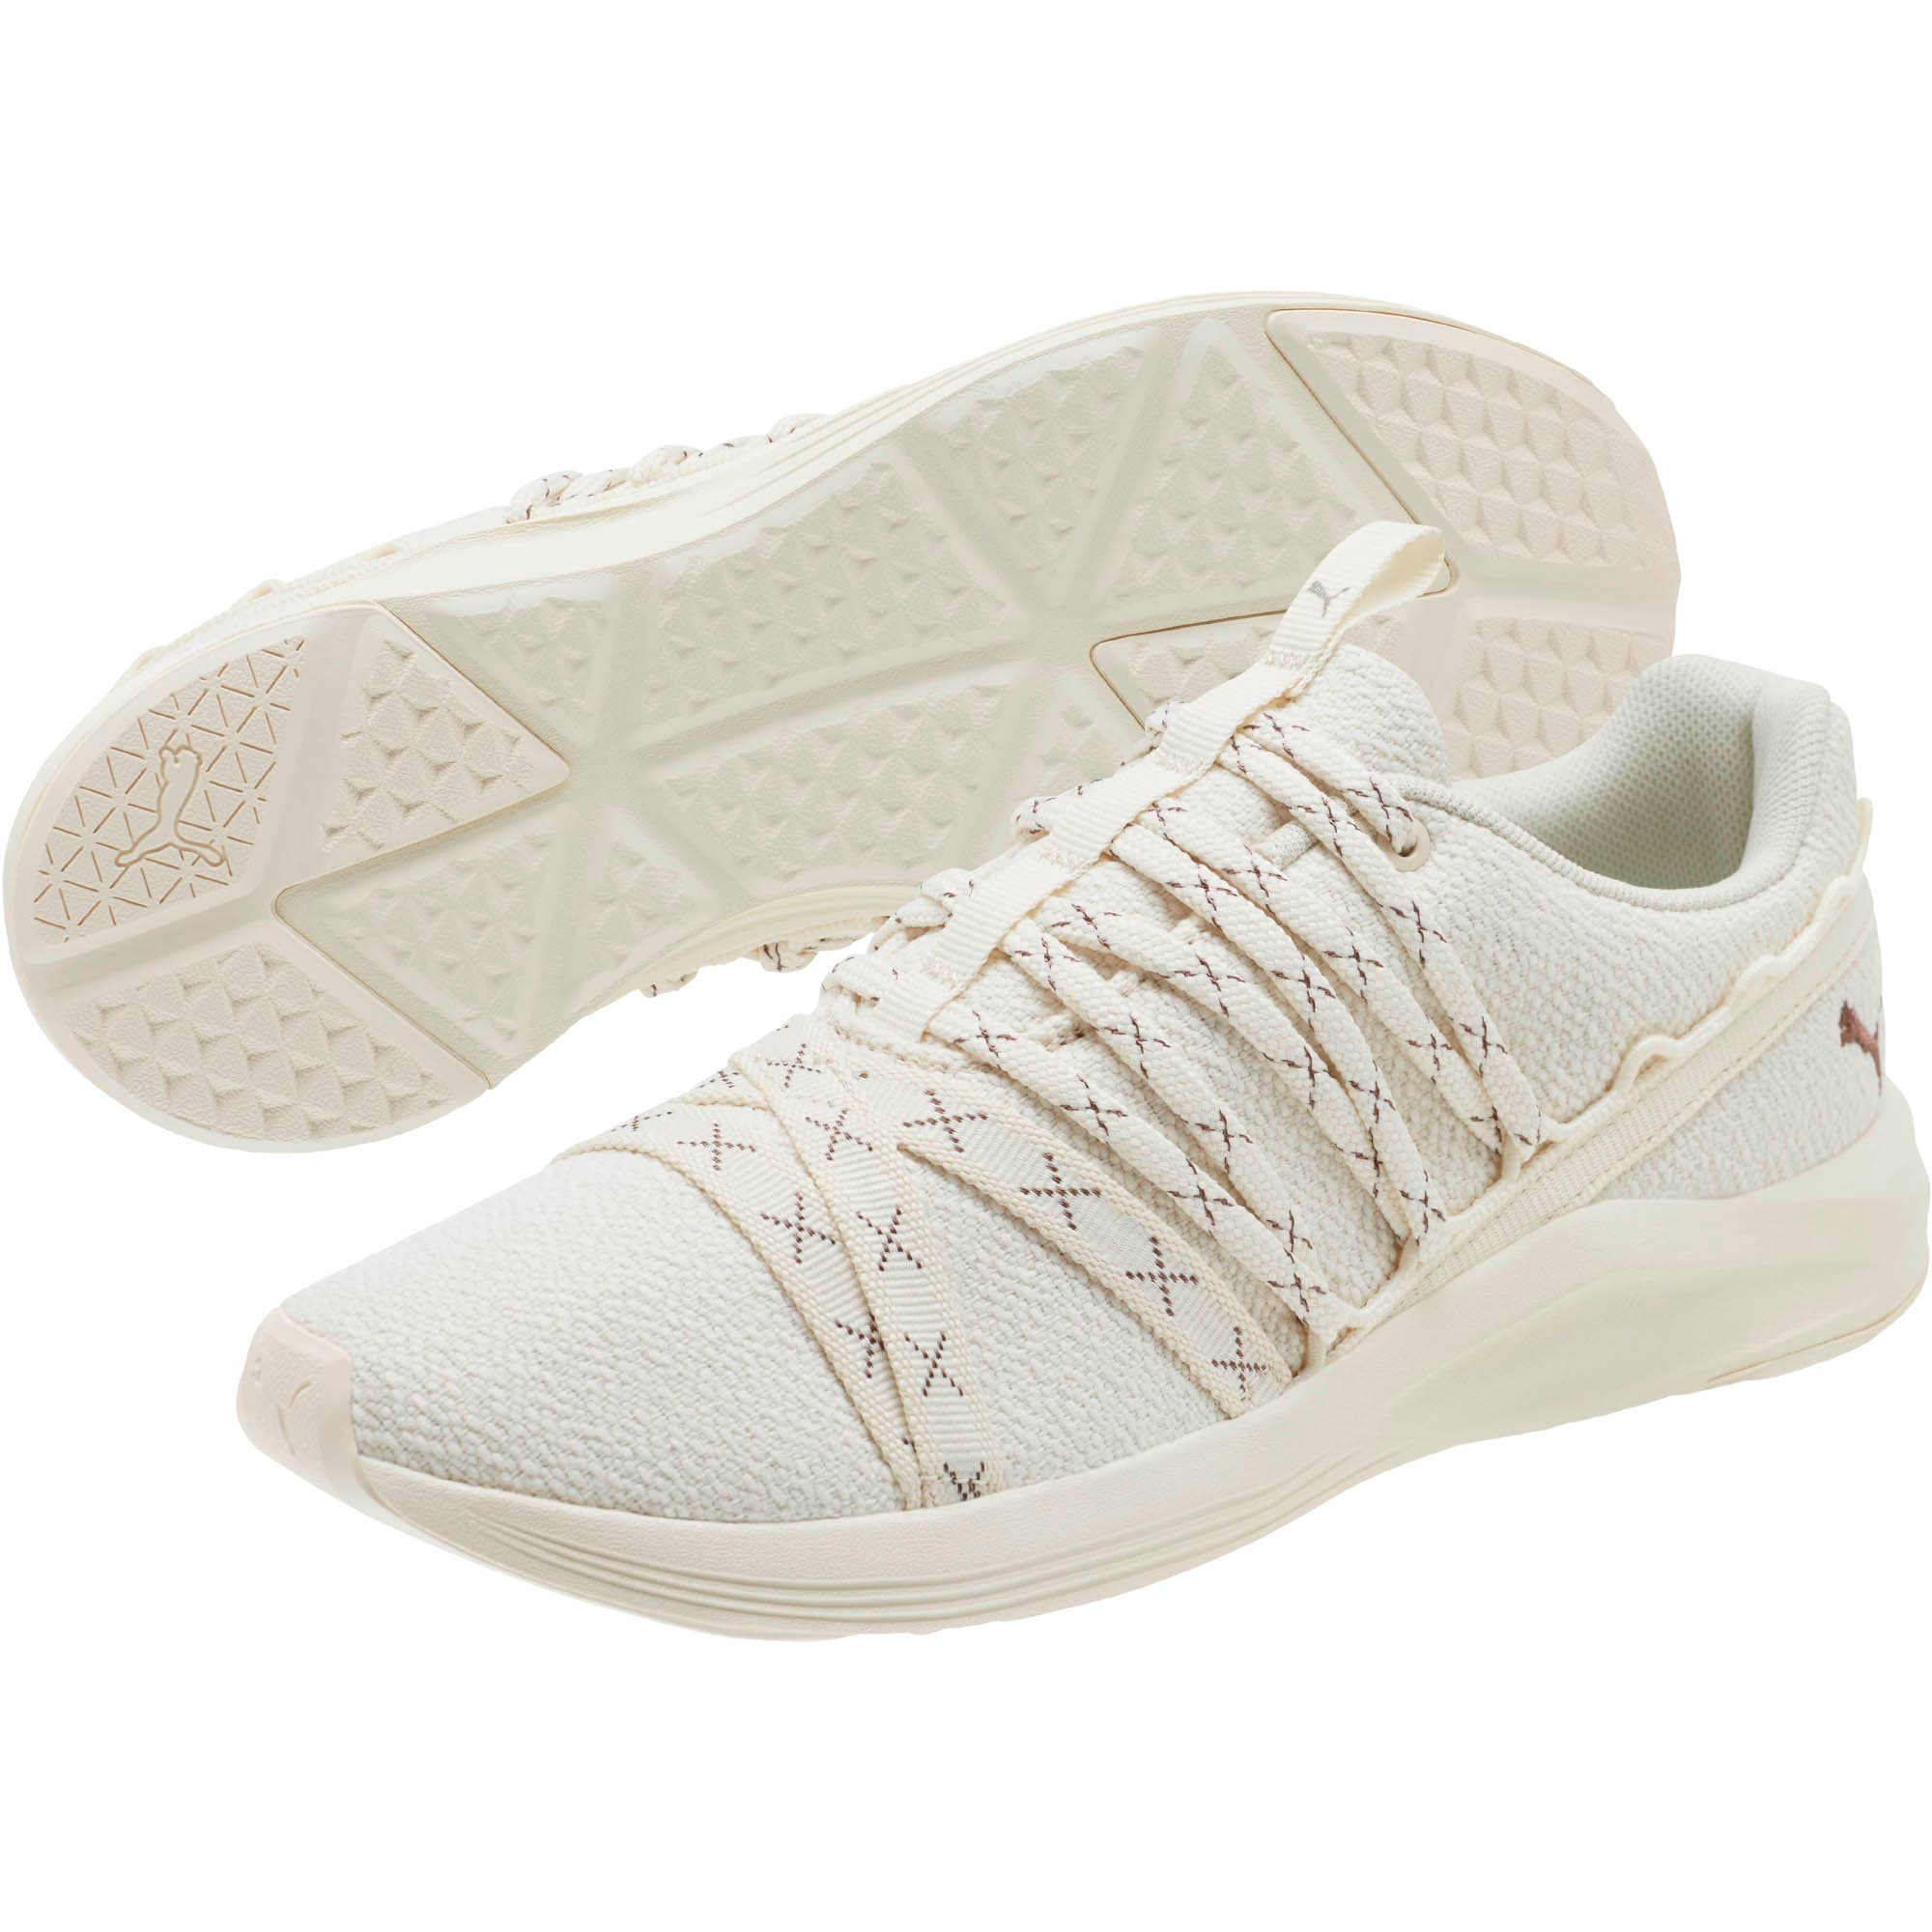 Thumbnail 2 of Prowl Alt 2 LX Women's Training Shoes, Whisper White, medium